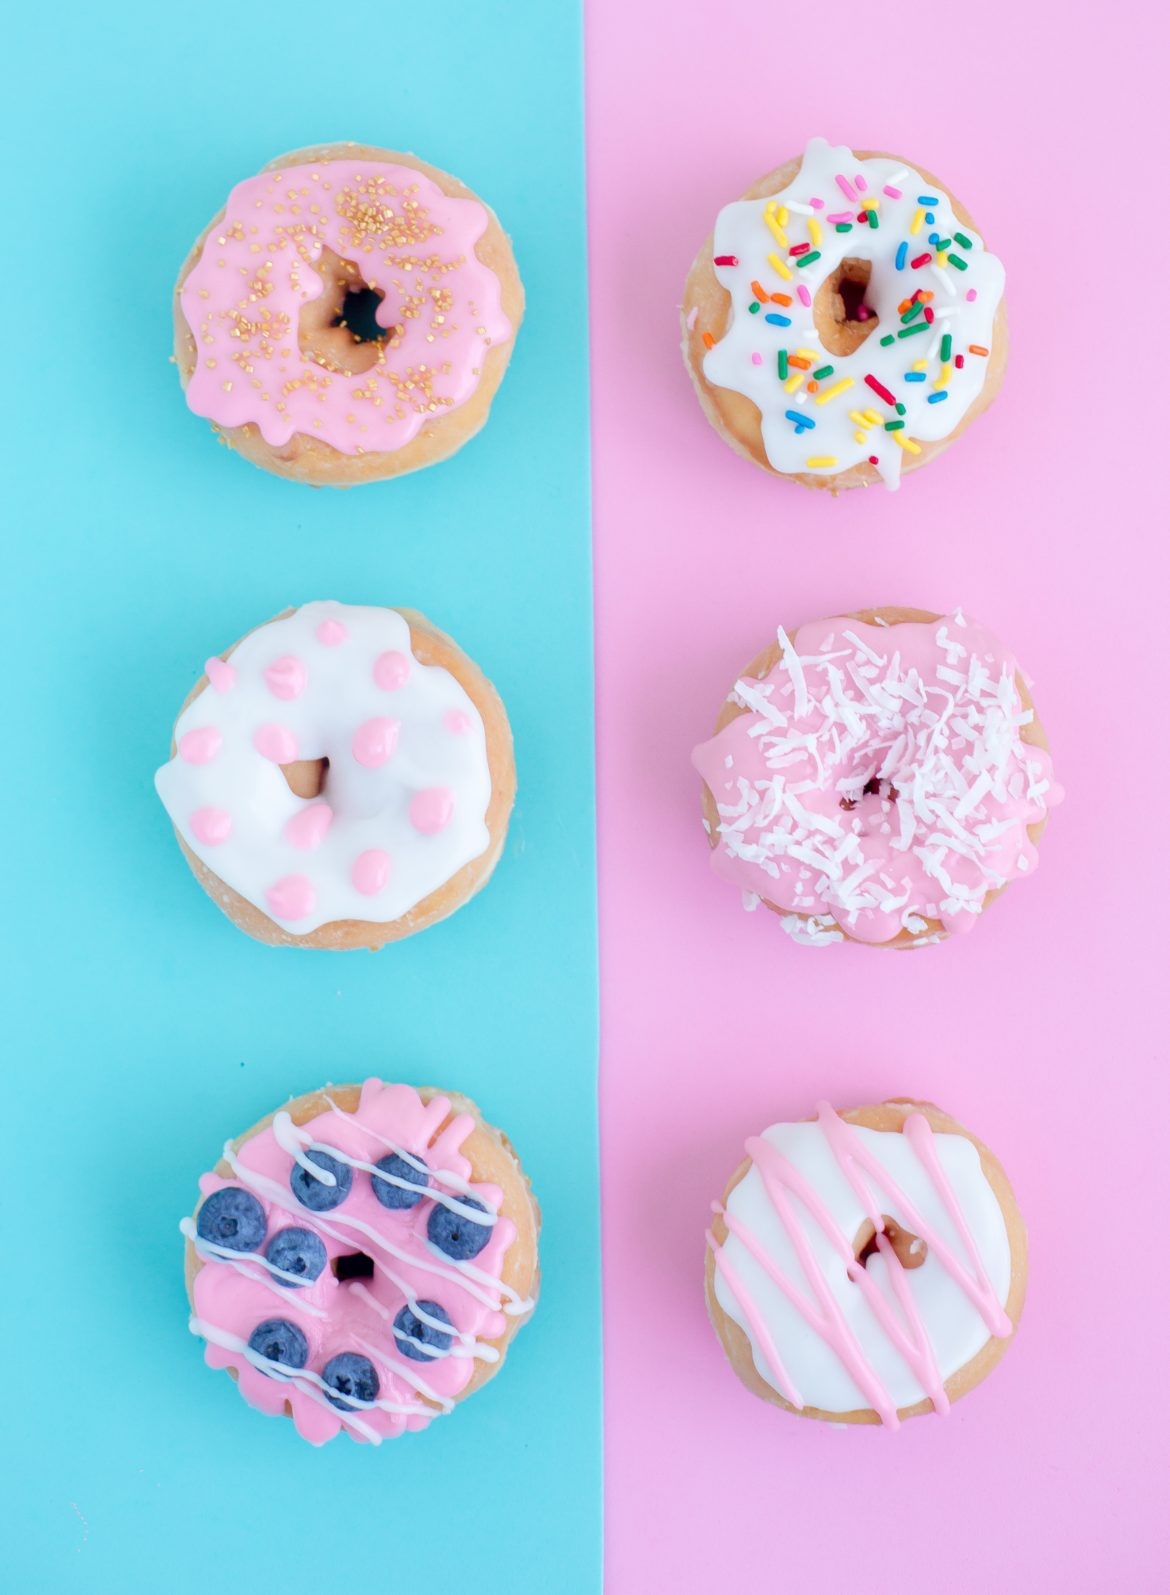 best donut shop in spring is snowflake donuts on louetta, weekly hello issue 7 features so much cool stuff. jo & co realty group